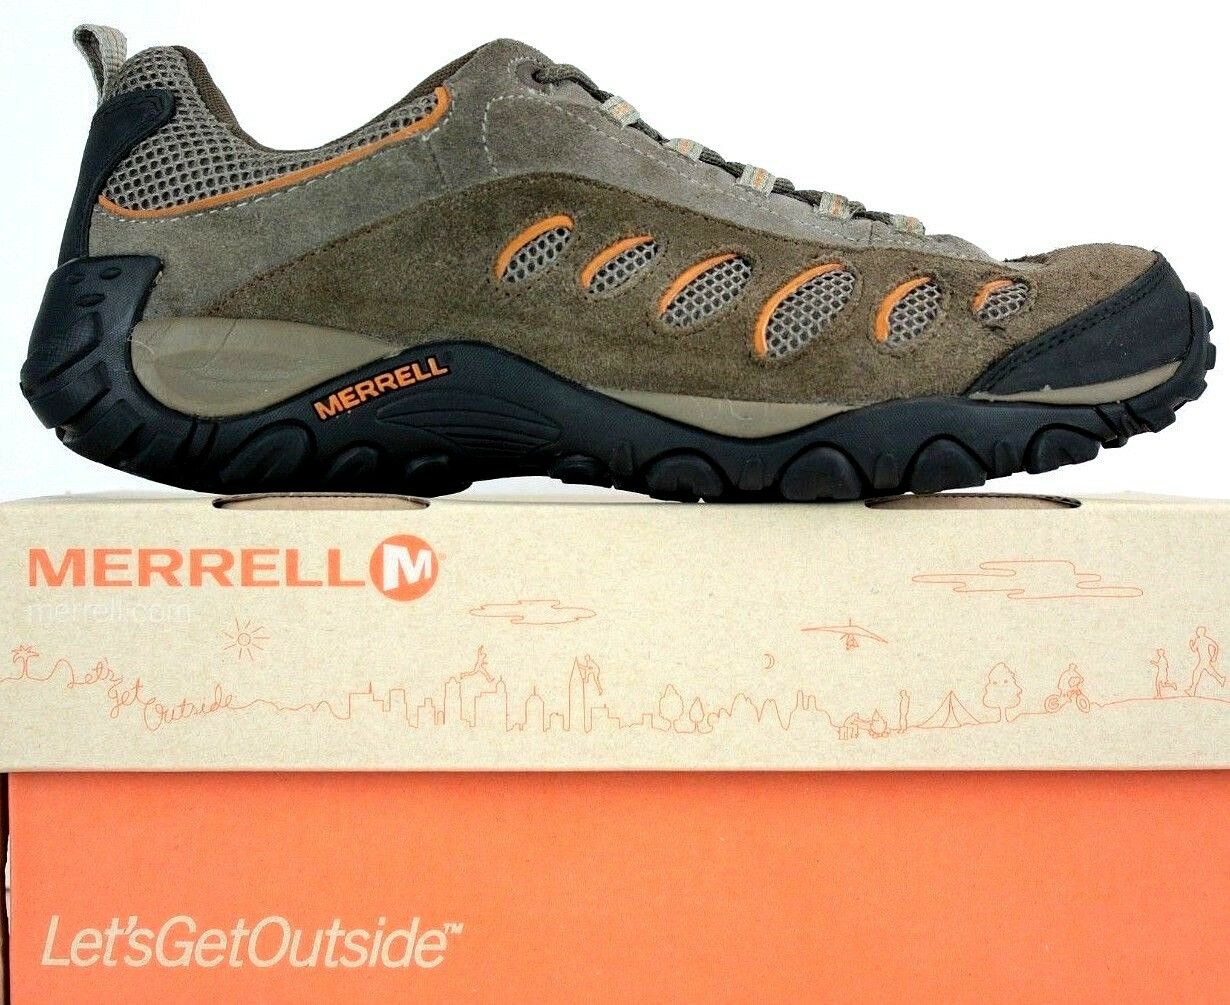 Merrell Mens Hiking shoes size 10 Brown Grey orange Suede TMO FW274